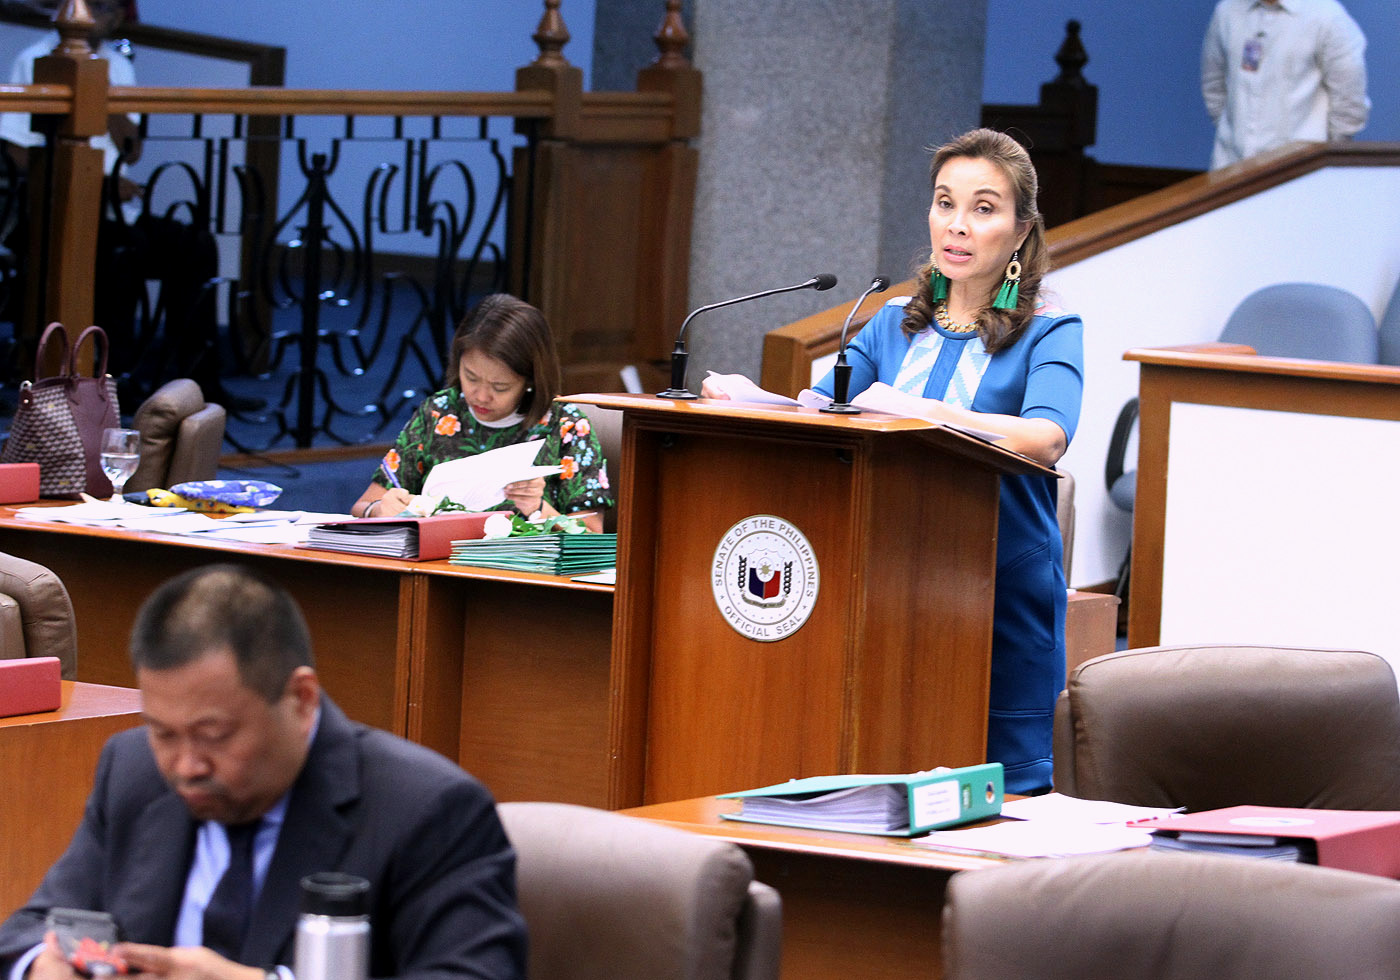 Senate Approves on 2nd Reading the Cybercrime Convention, Agreement Establishing AMRO, and Double Taxation Avoidance Treaties